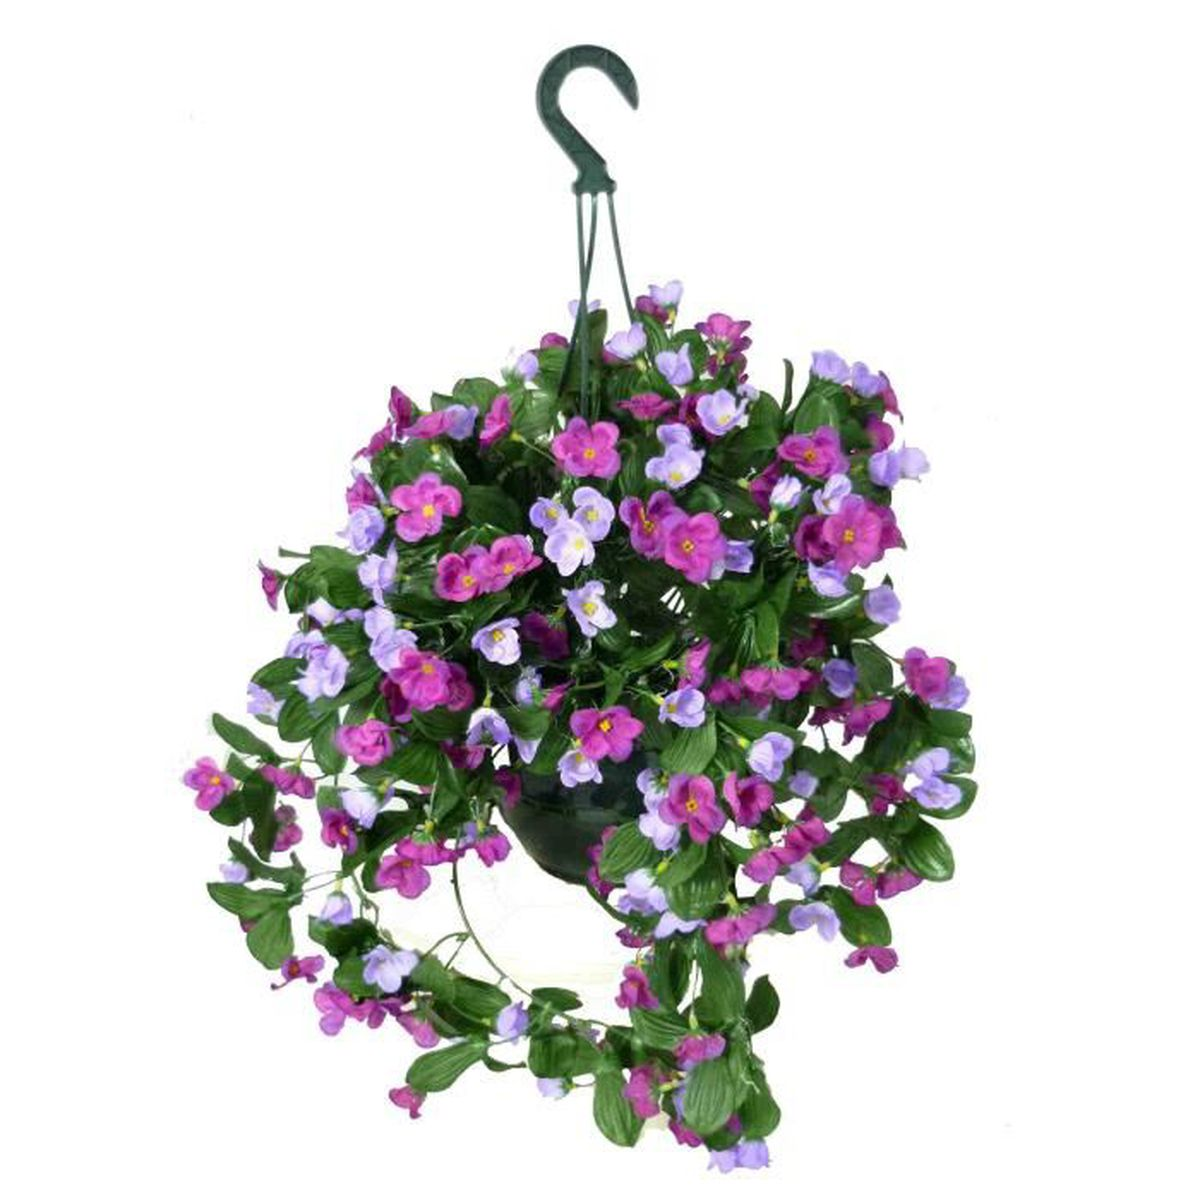 Suspension fleurs artificielles st paulia violine en pot for Vente par correspondance de fleurs